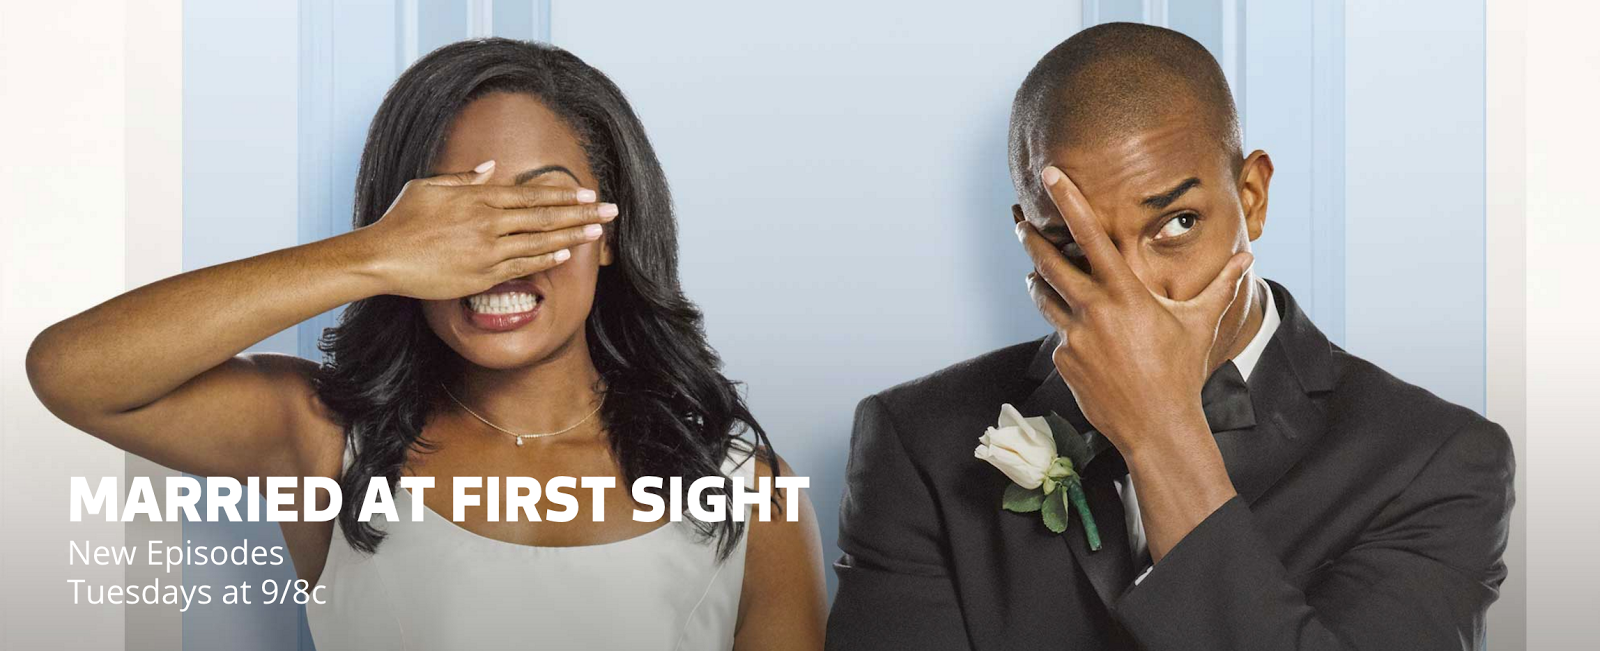 Watch full episodes of Married at First Sight and get the latest breaking news exclusive videos and pictures episode recaps and much more at TVGuidecom